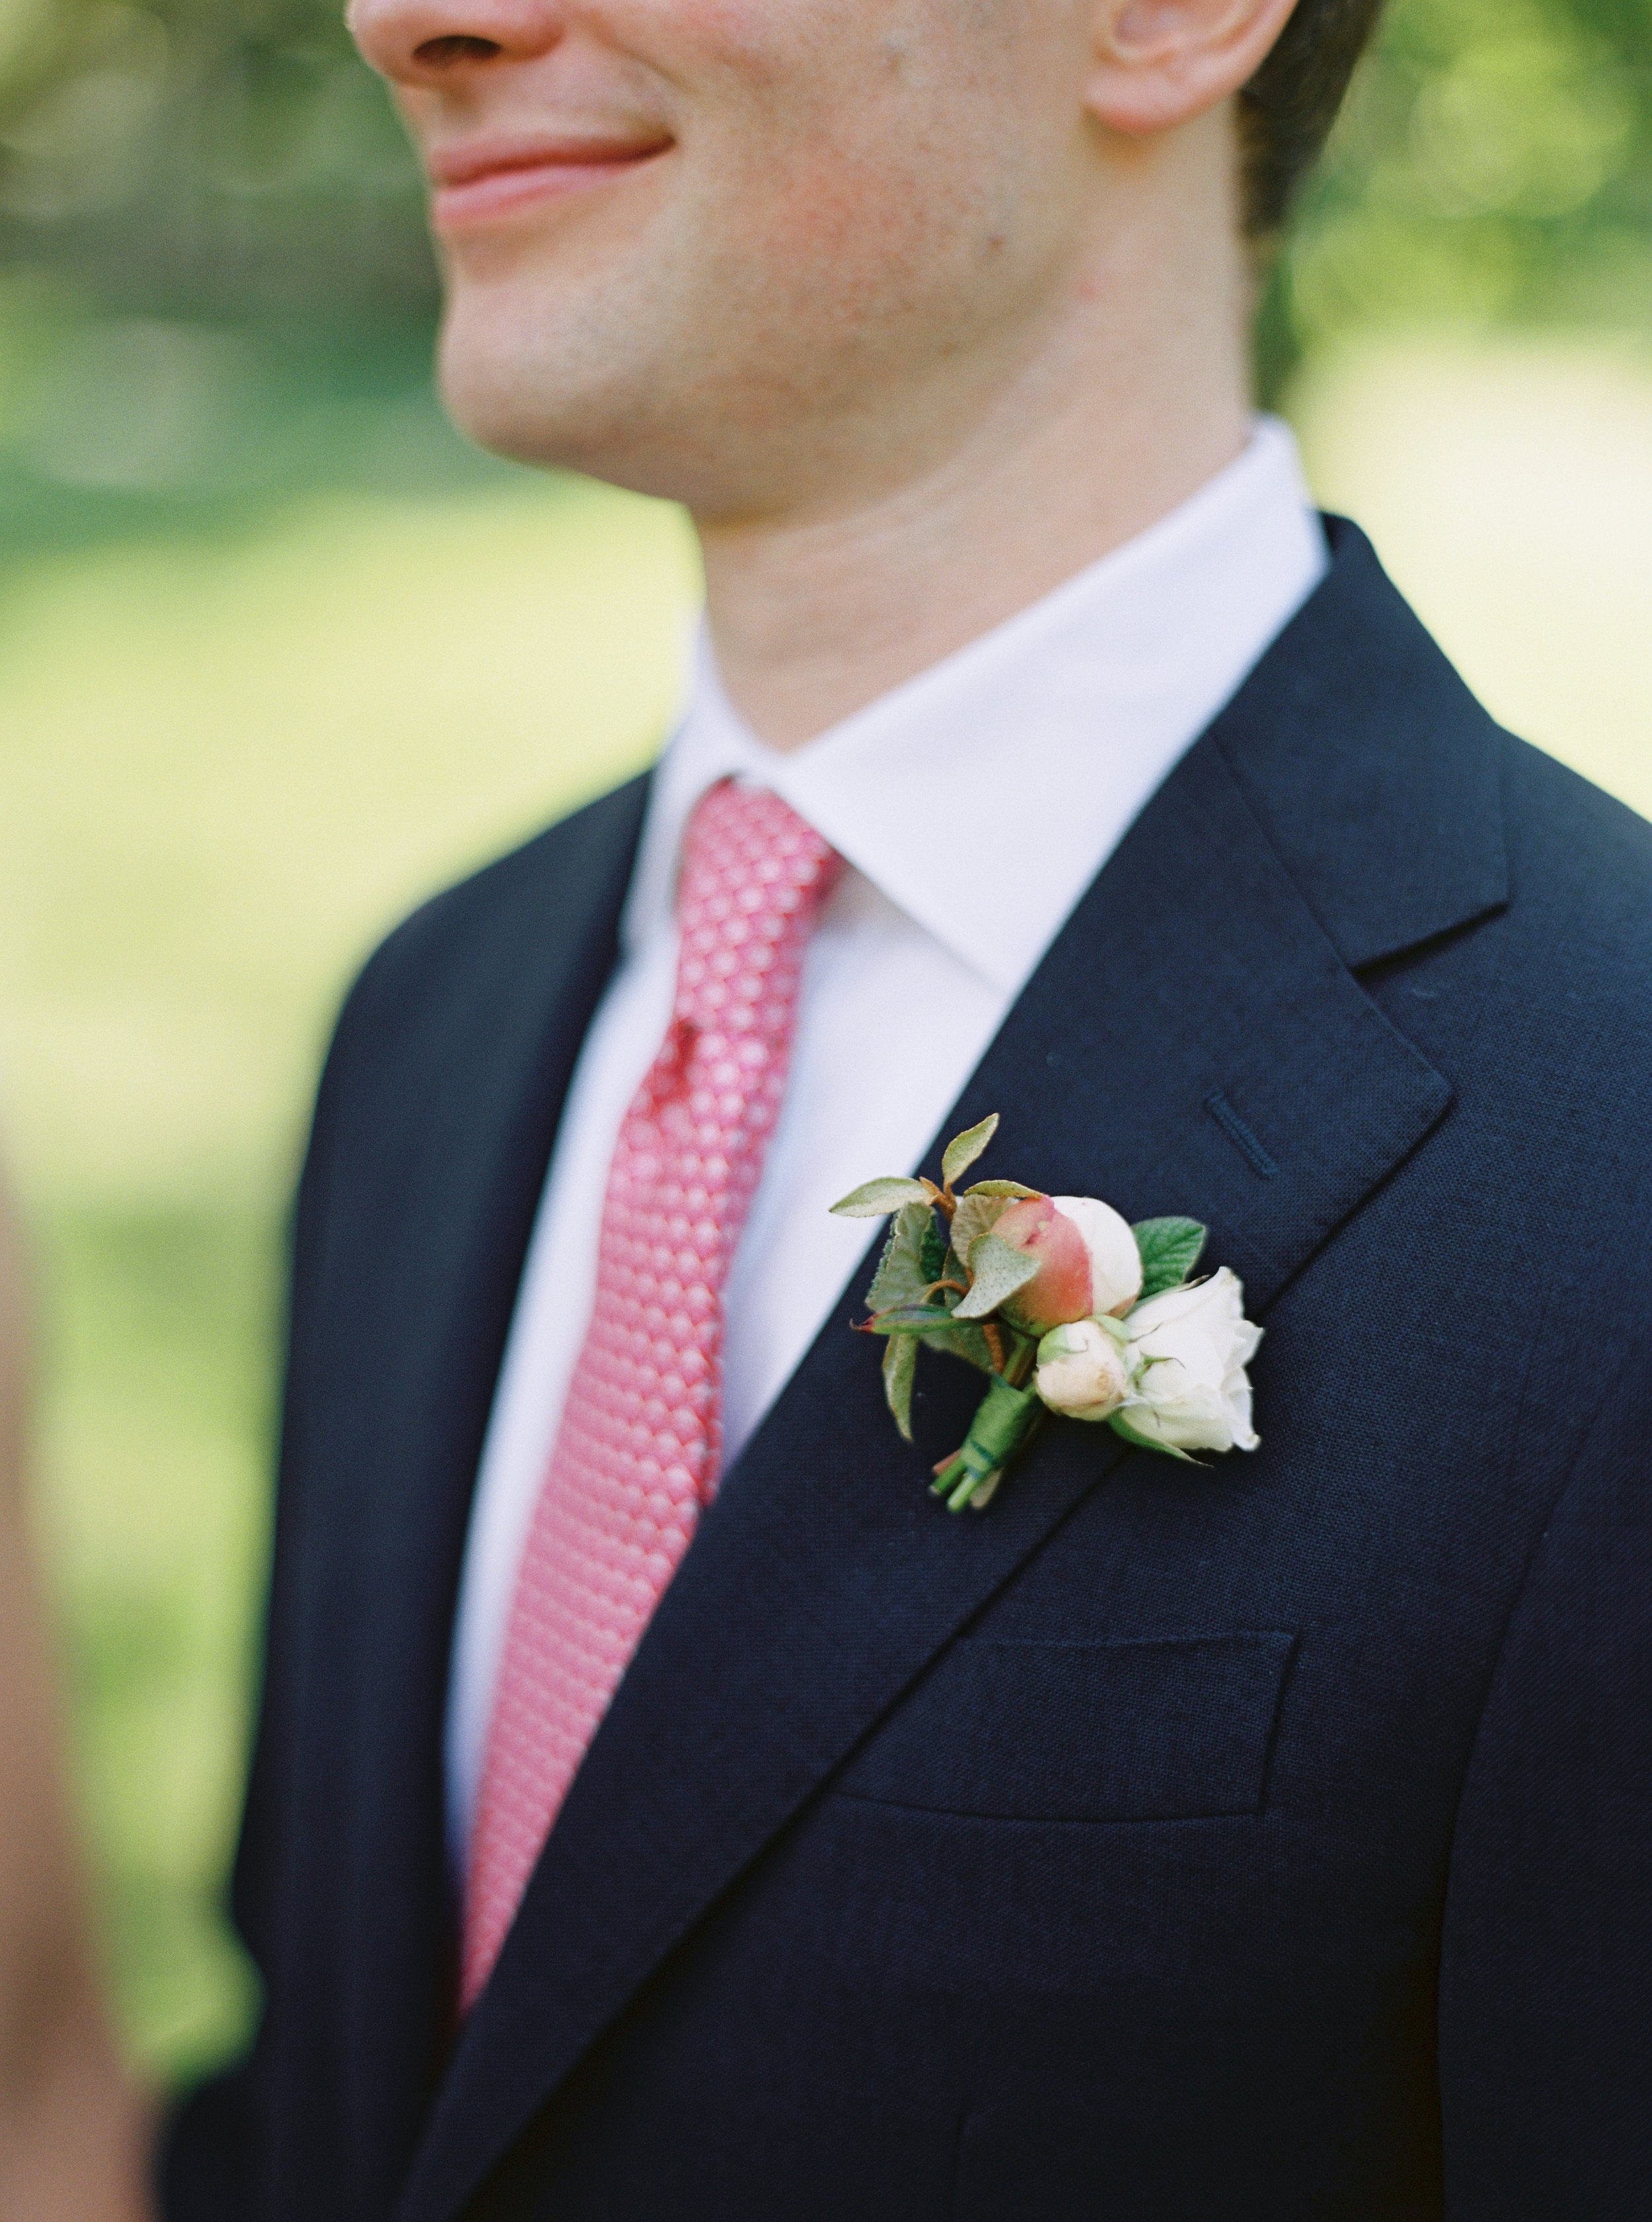 amelia_johnson_photography_laura&henry_wedding00081.jpg